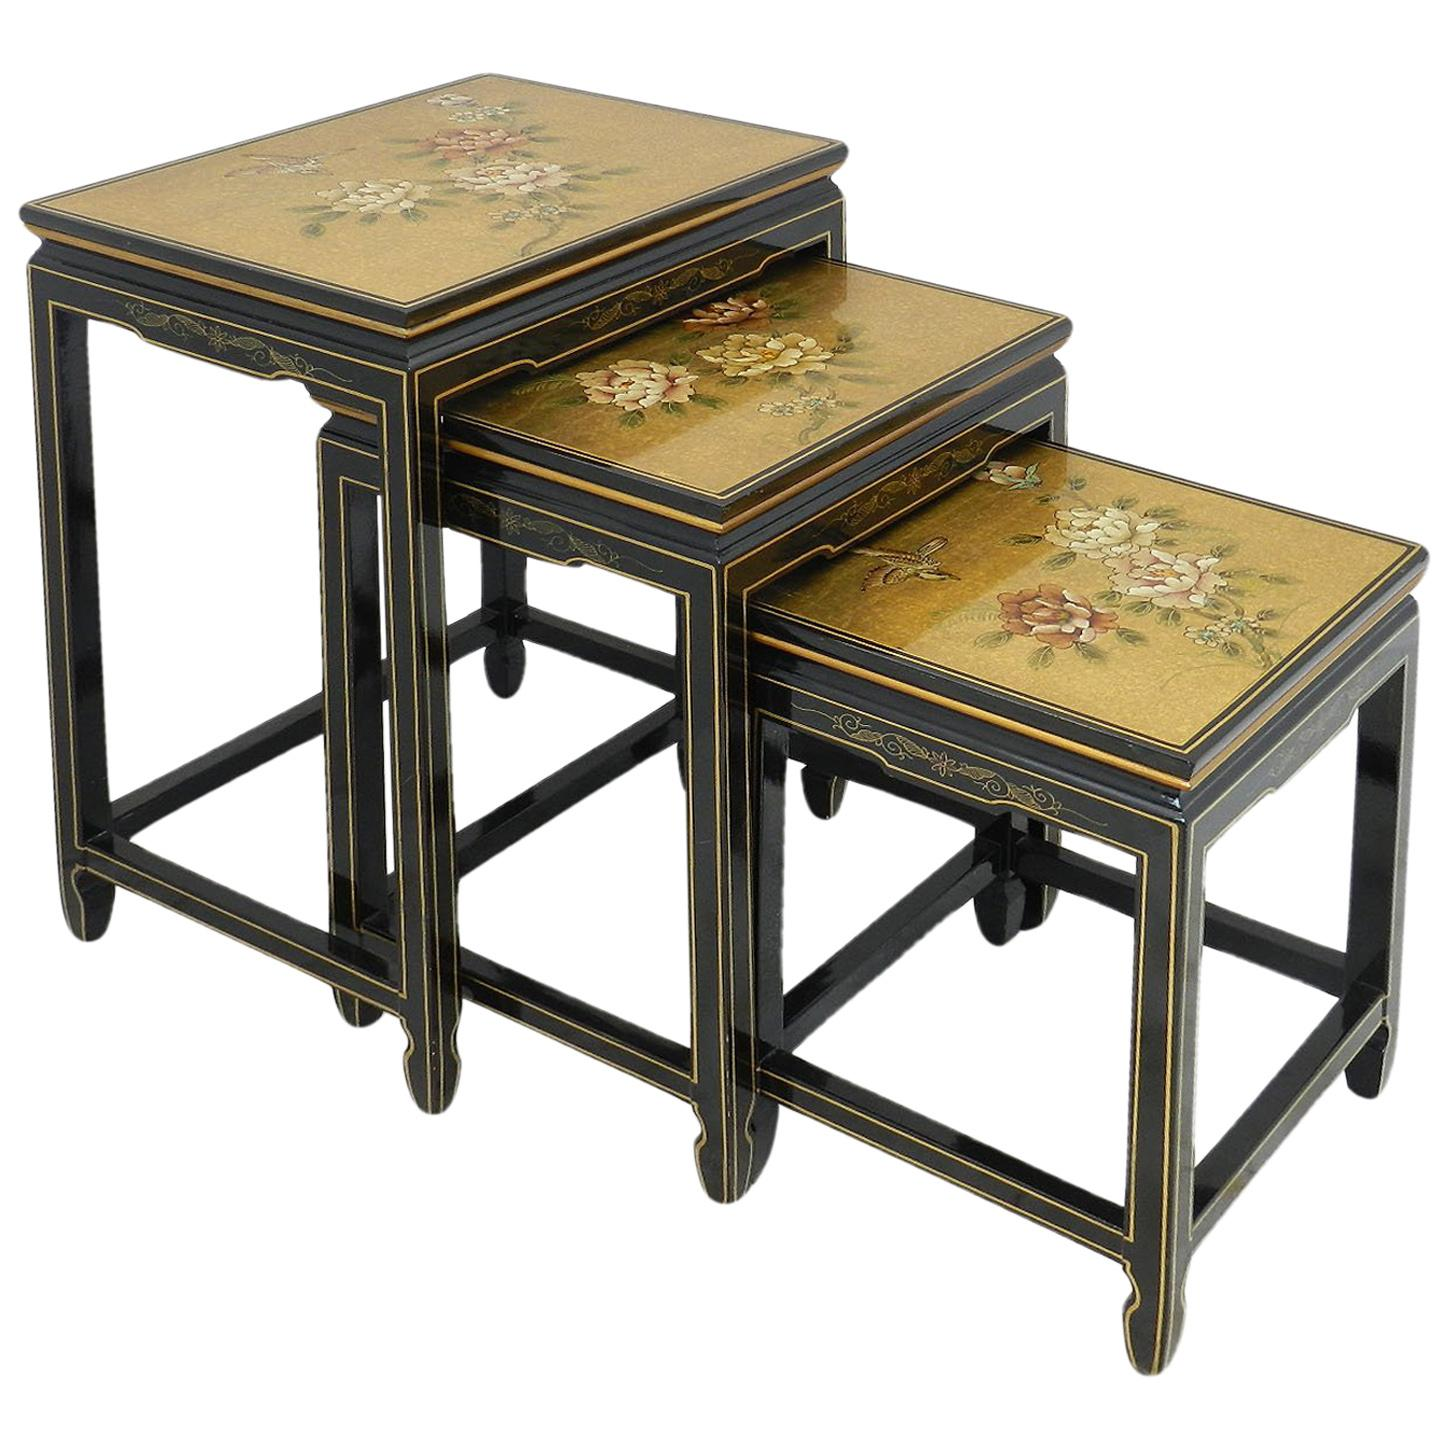 Chinoiserie Nesting Tables Black Lacquer Decorative Gold Birds Flowers